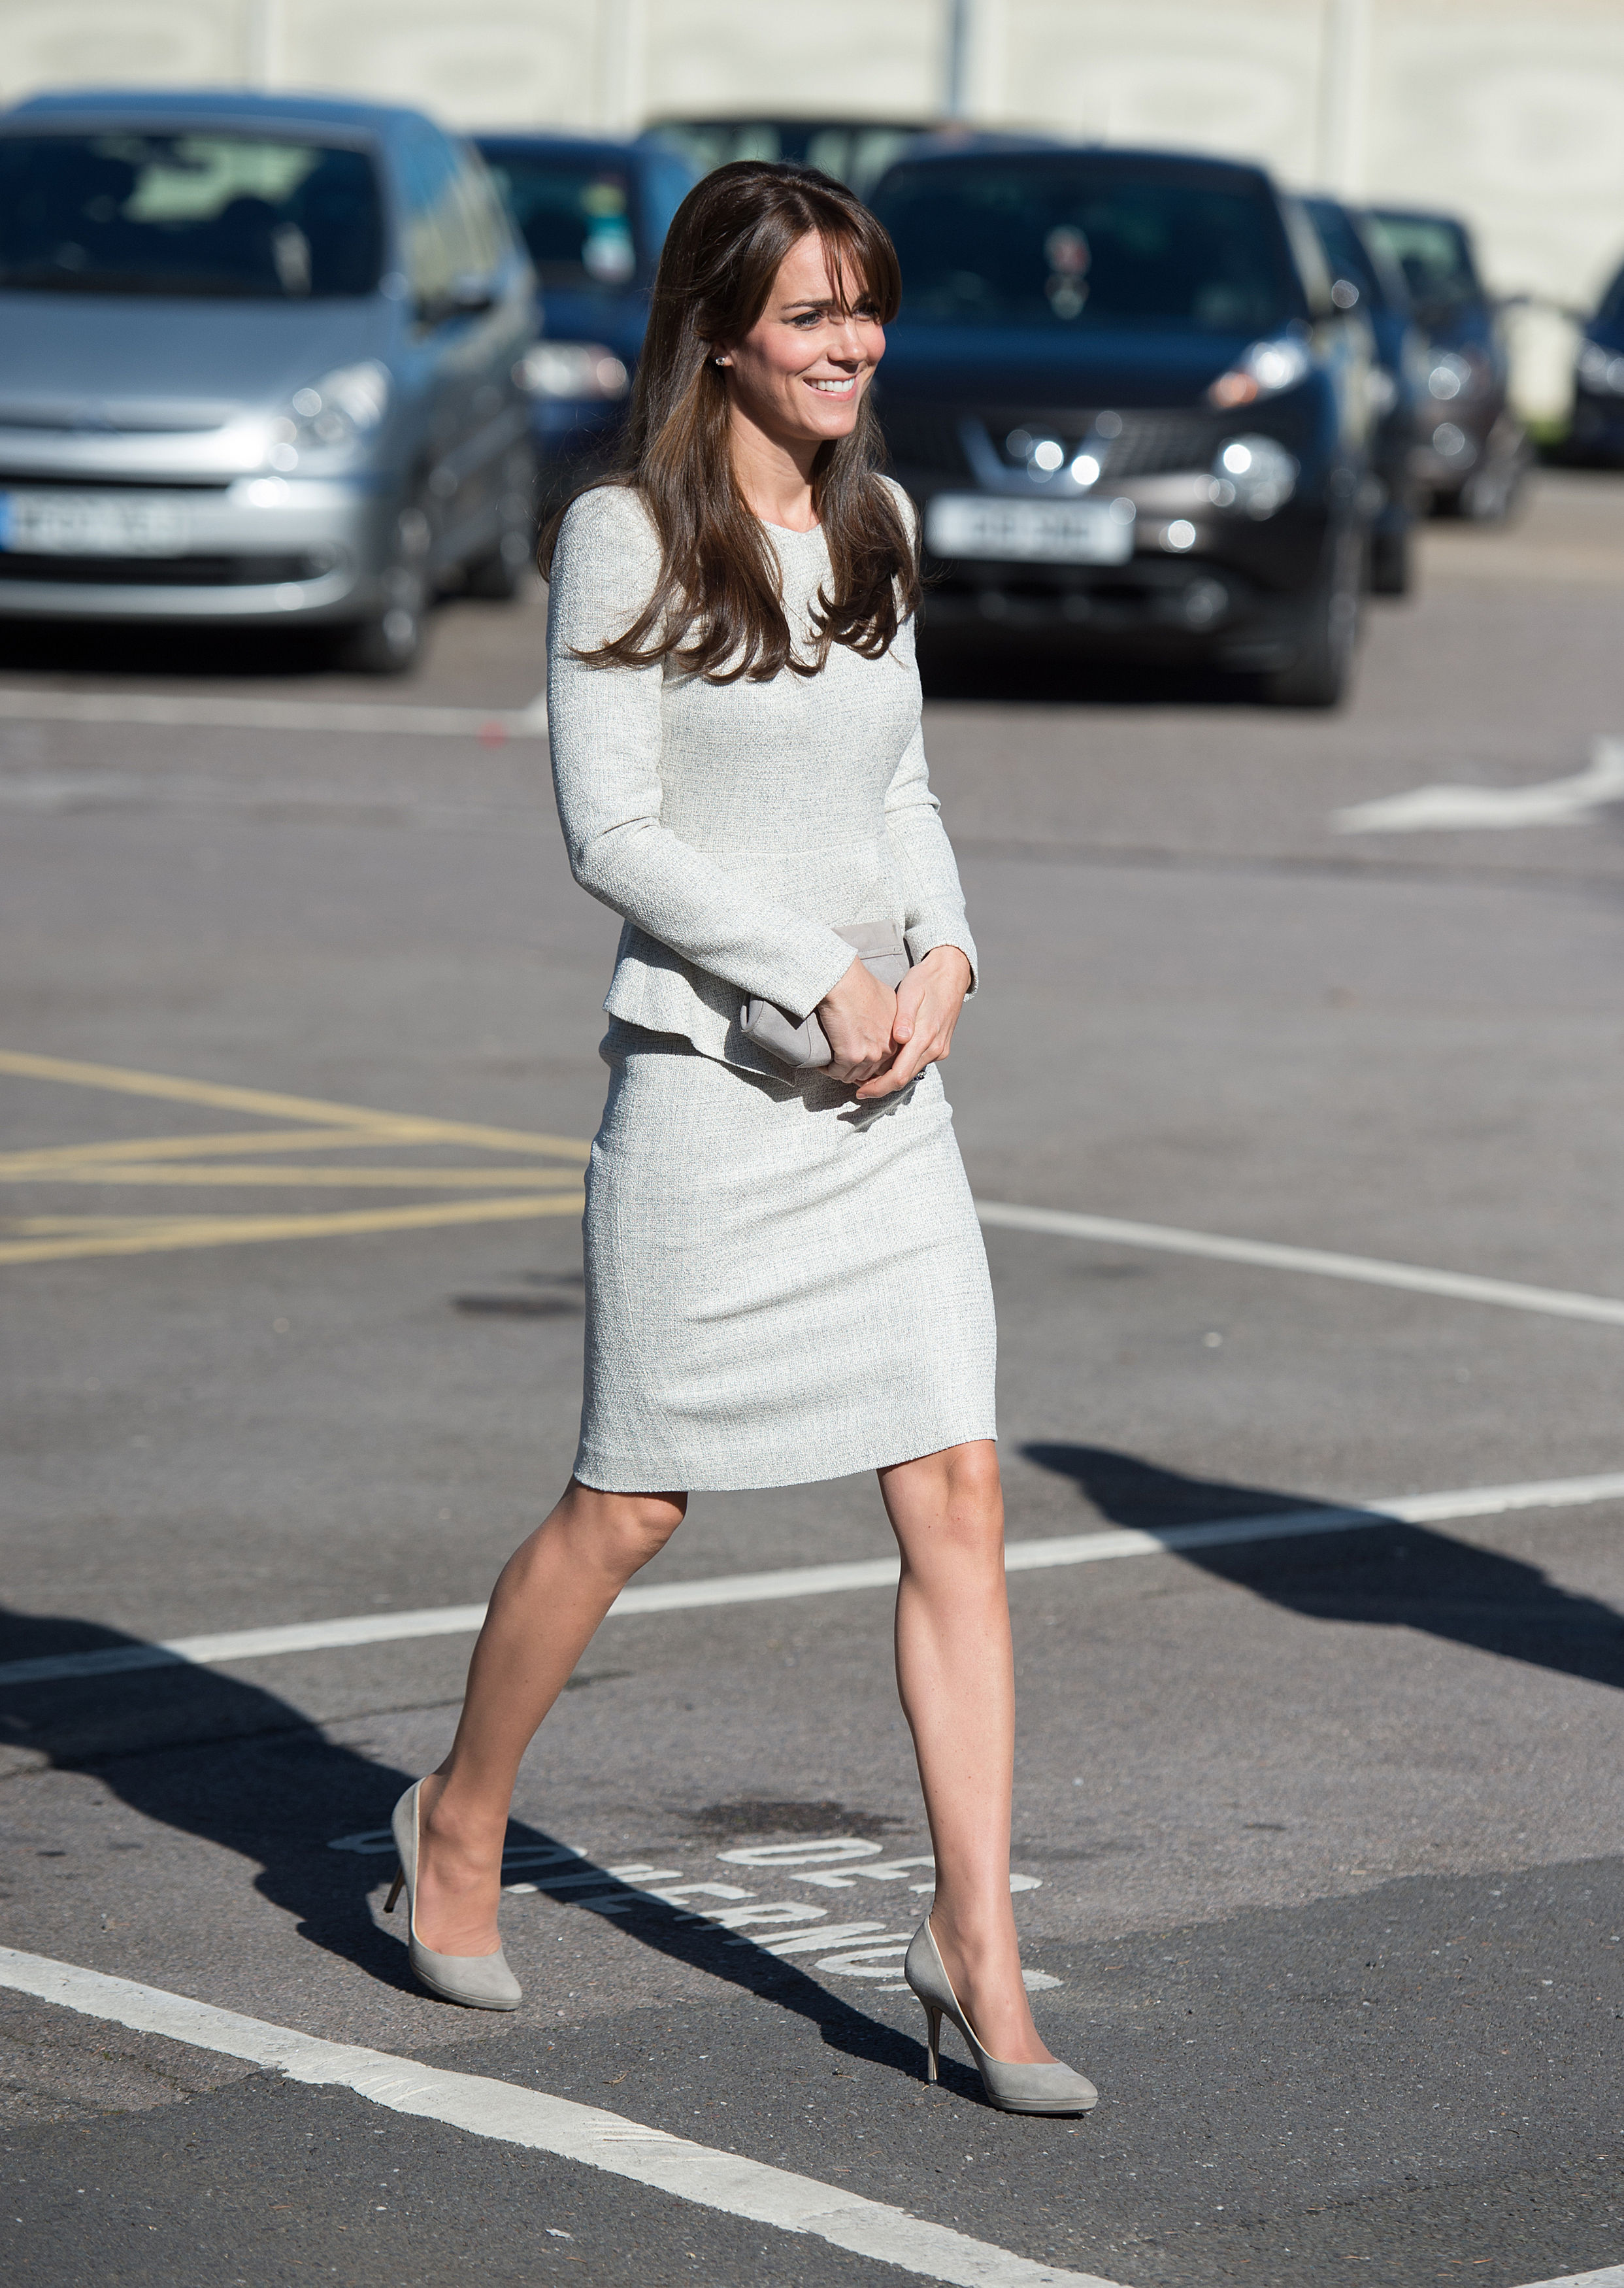 Kate Middleton's Prison-Visit Look Includes Pumps and a Clutch